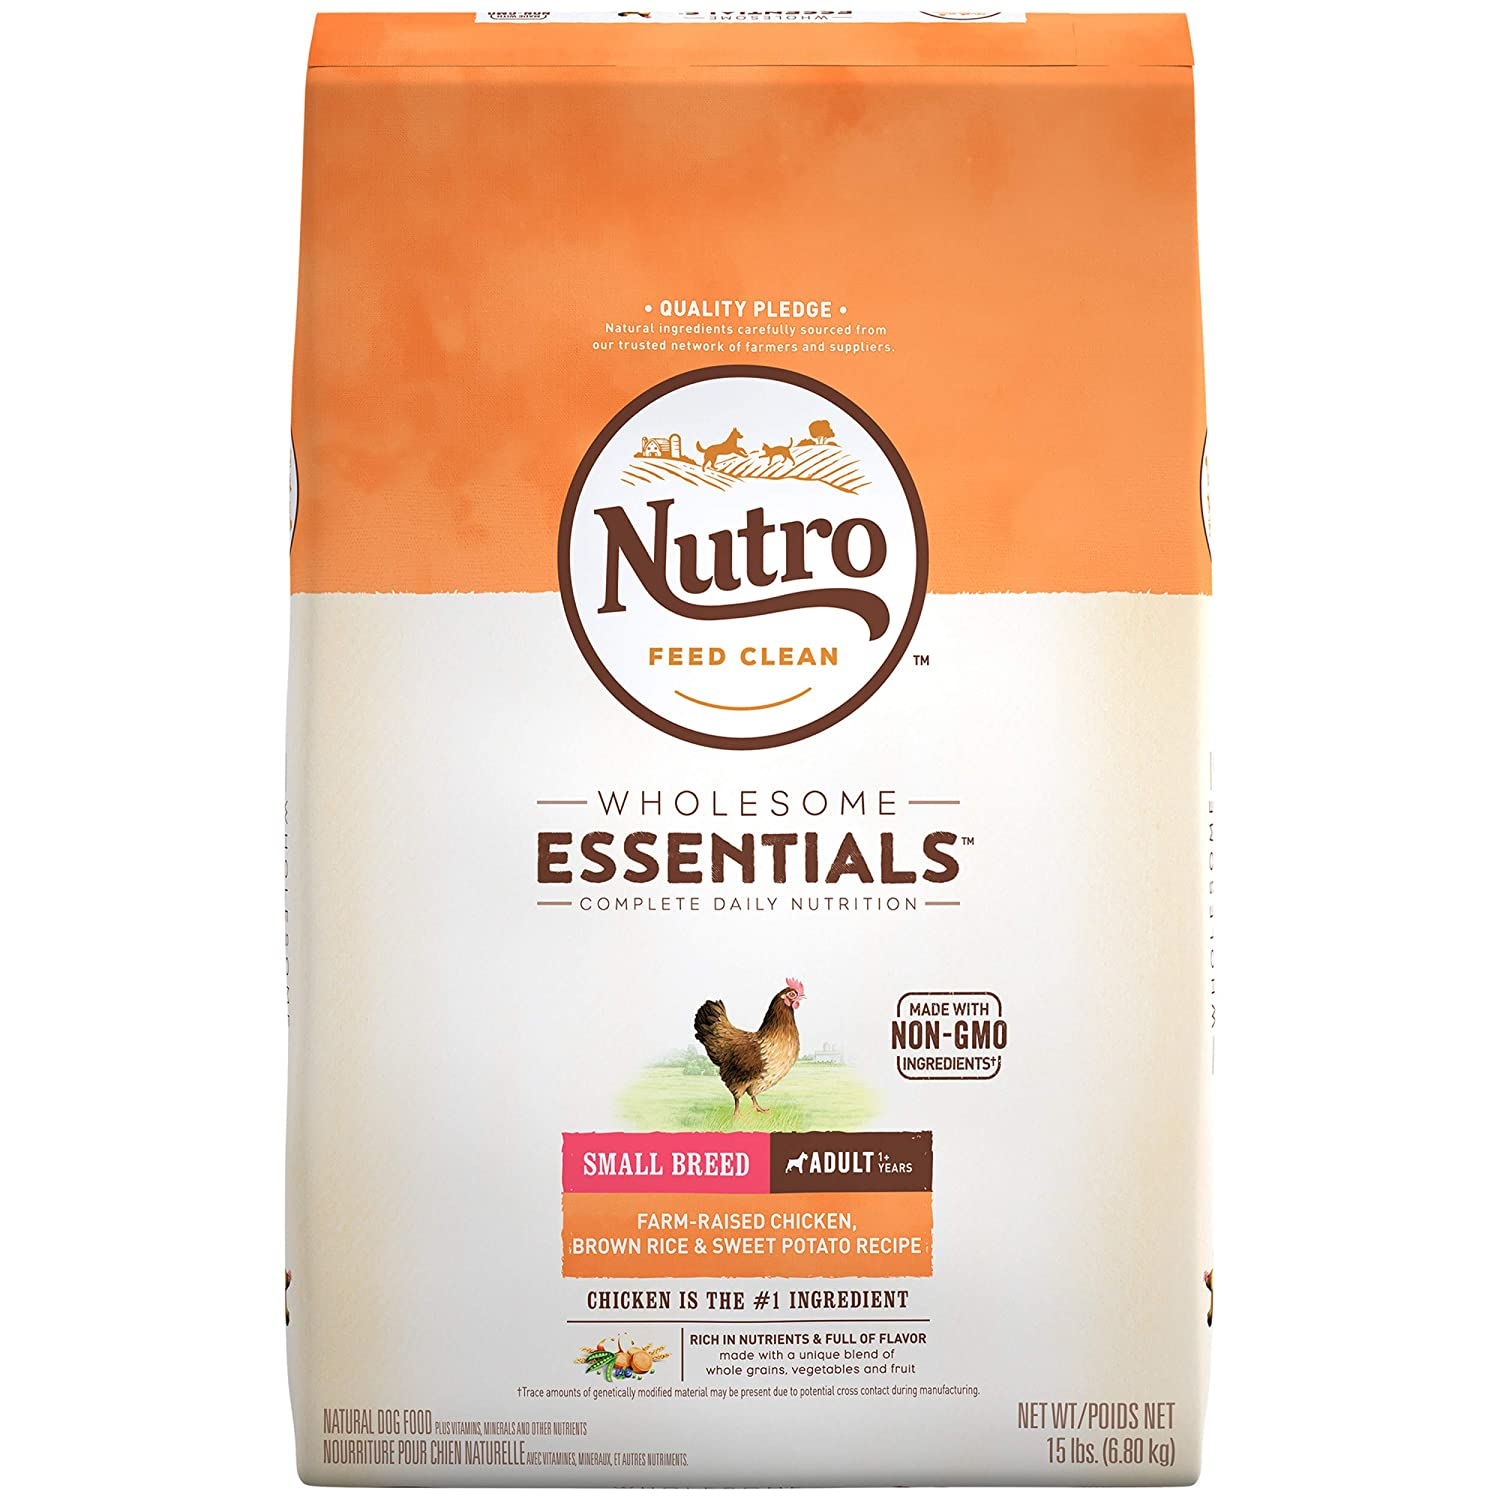 5. Nutro Wholesome Essentials Small Breed Adult Dry